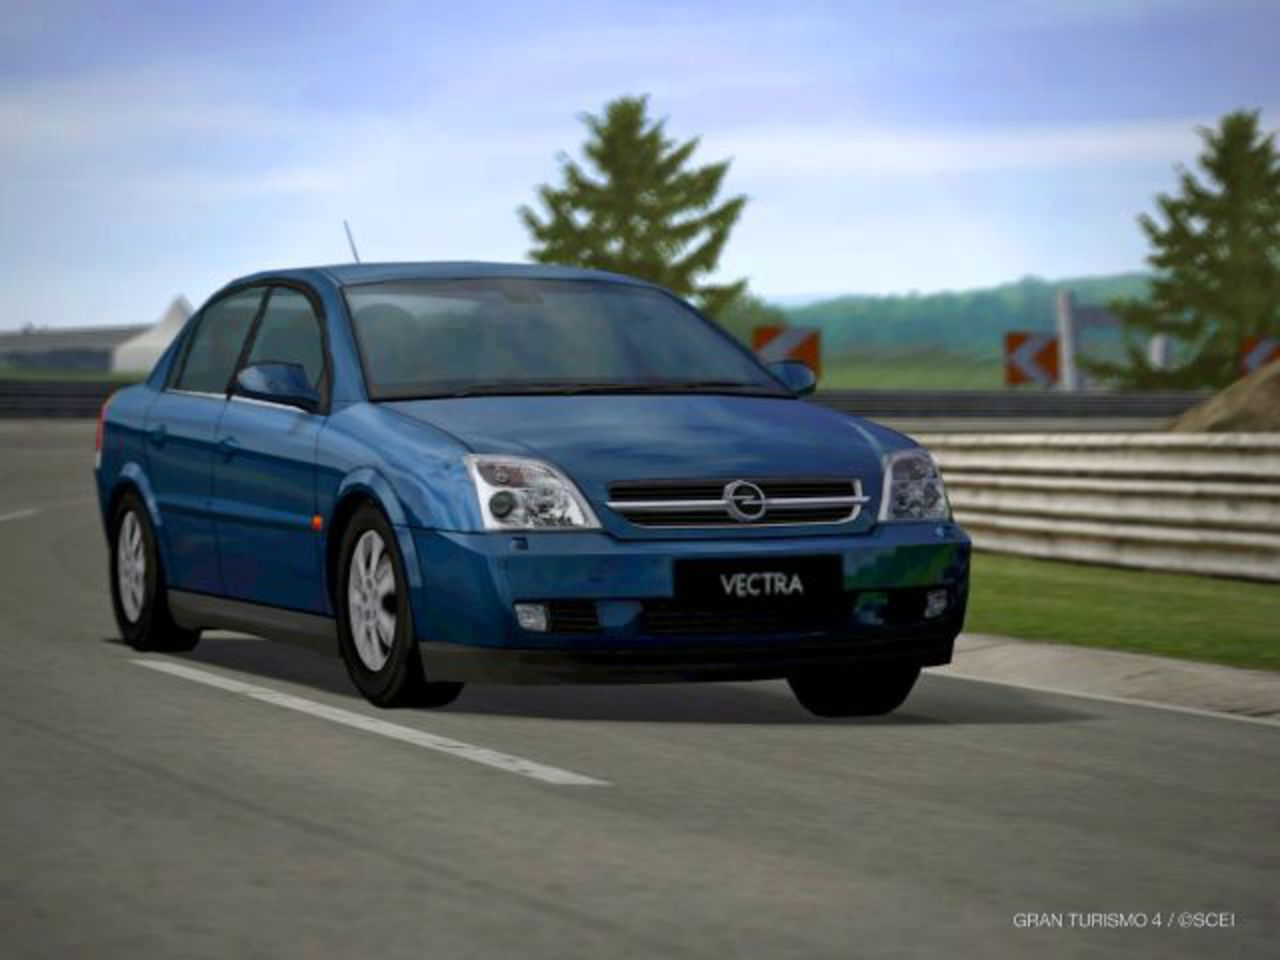 Opel Vectra 32 V6 GTS. View Download Wallpaper. 640x480. Comments